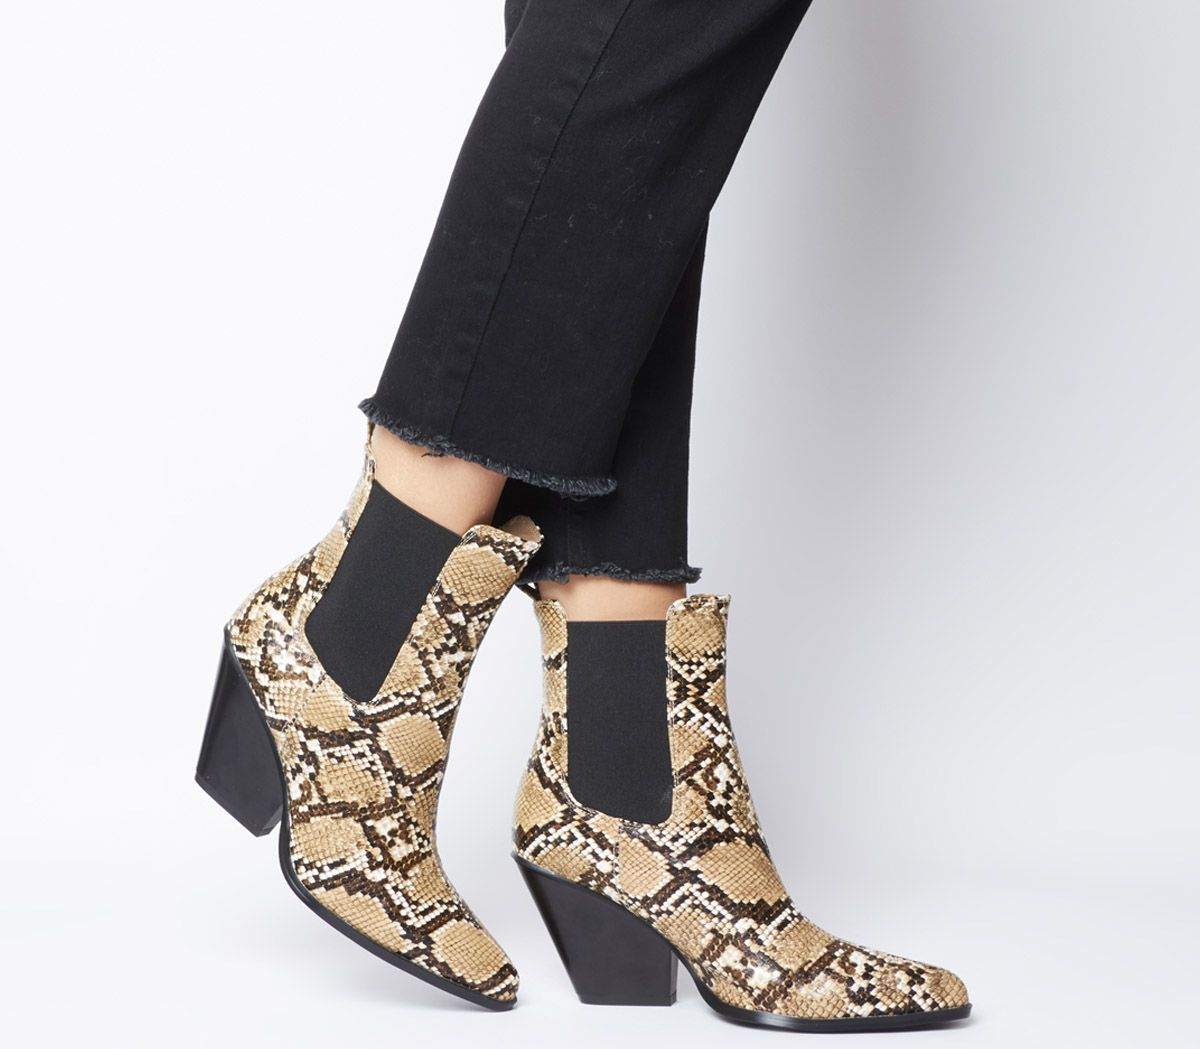 Ego Camille Heeled Chelsea Boots Nude Snake - Animal Print